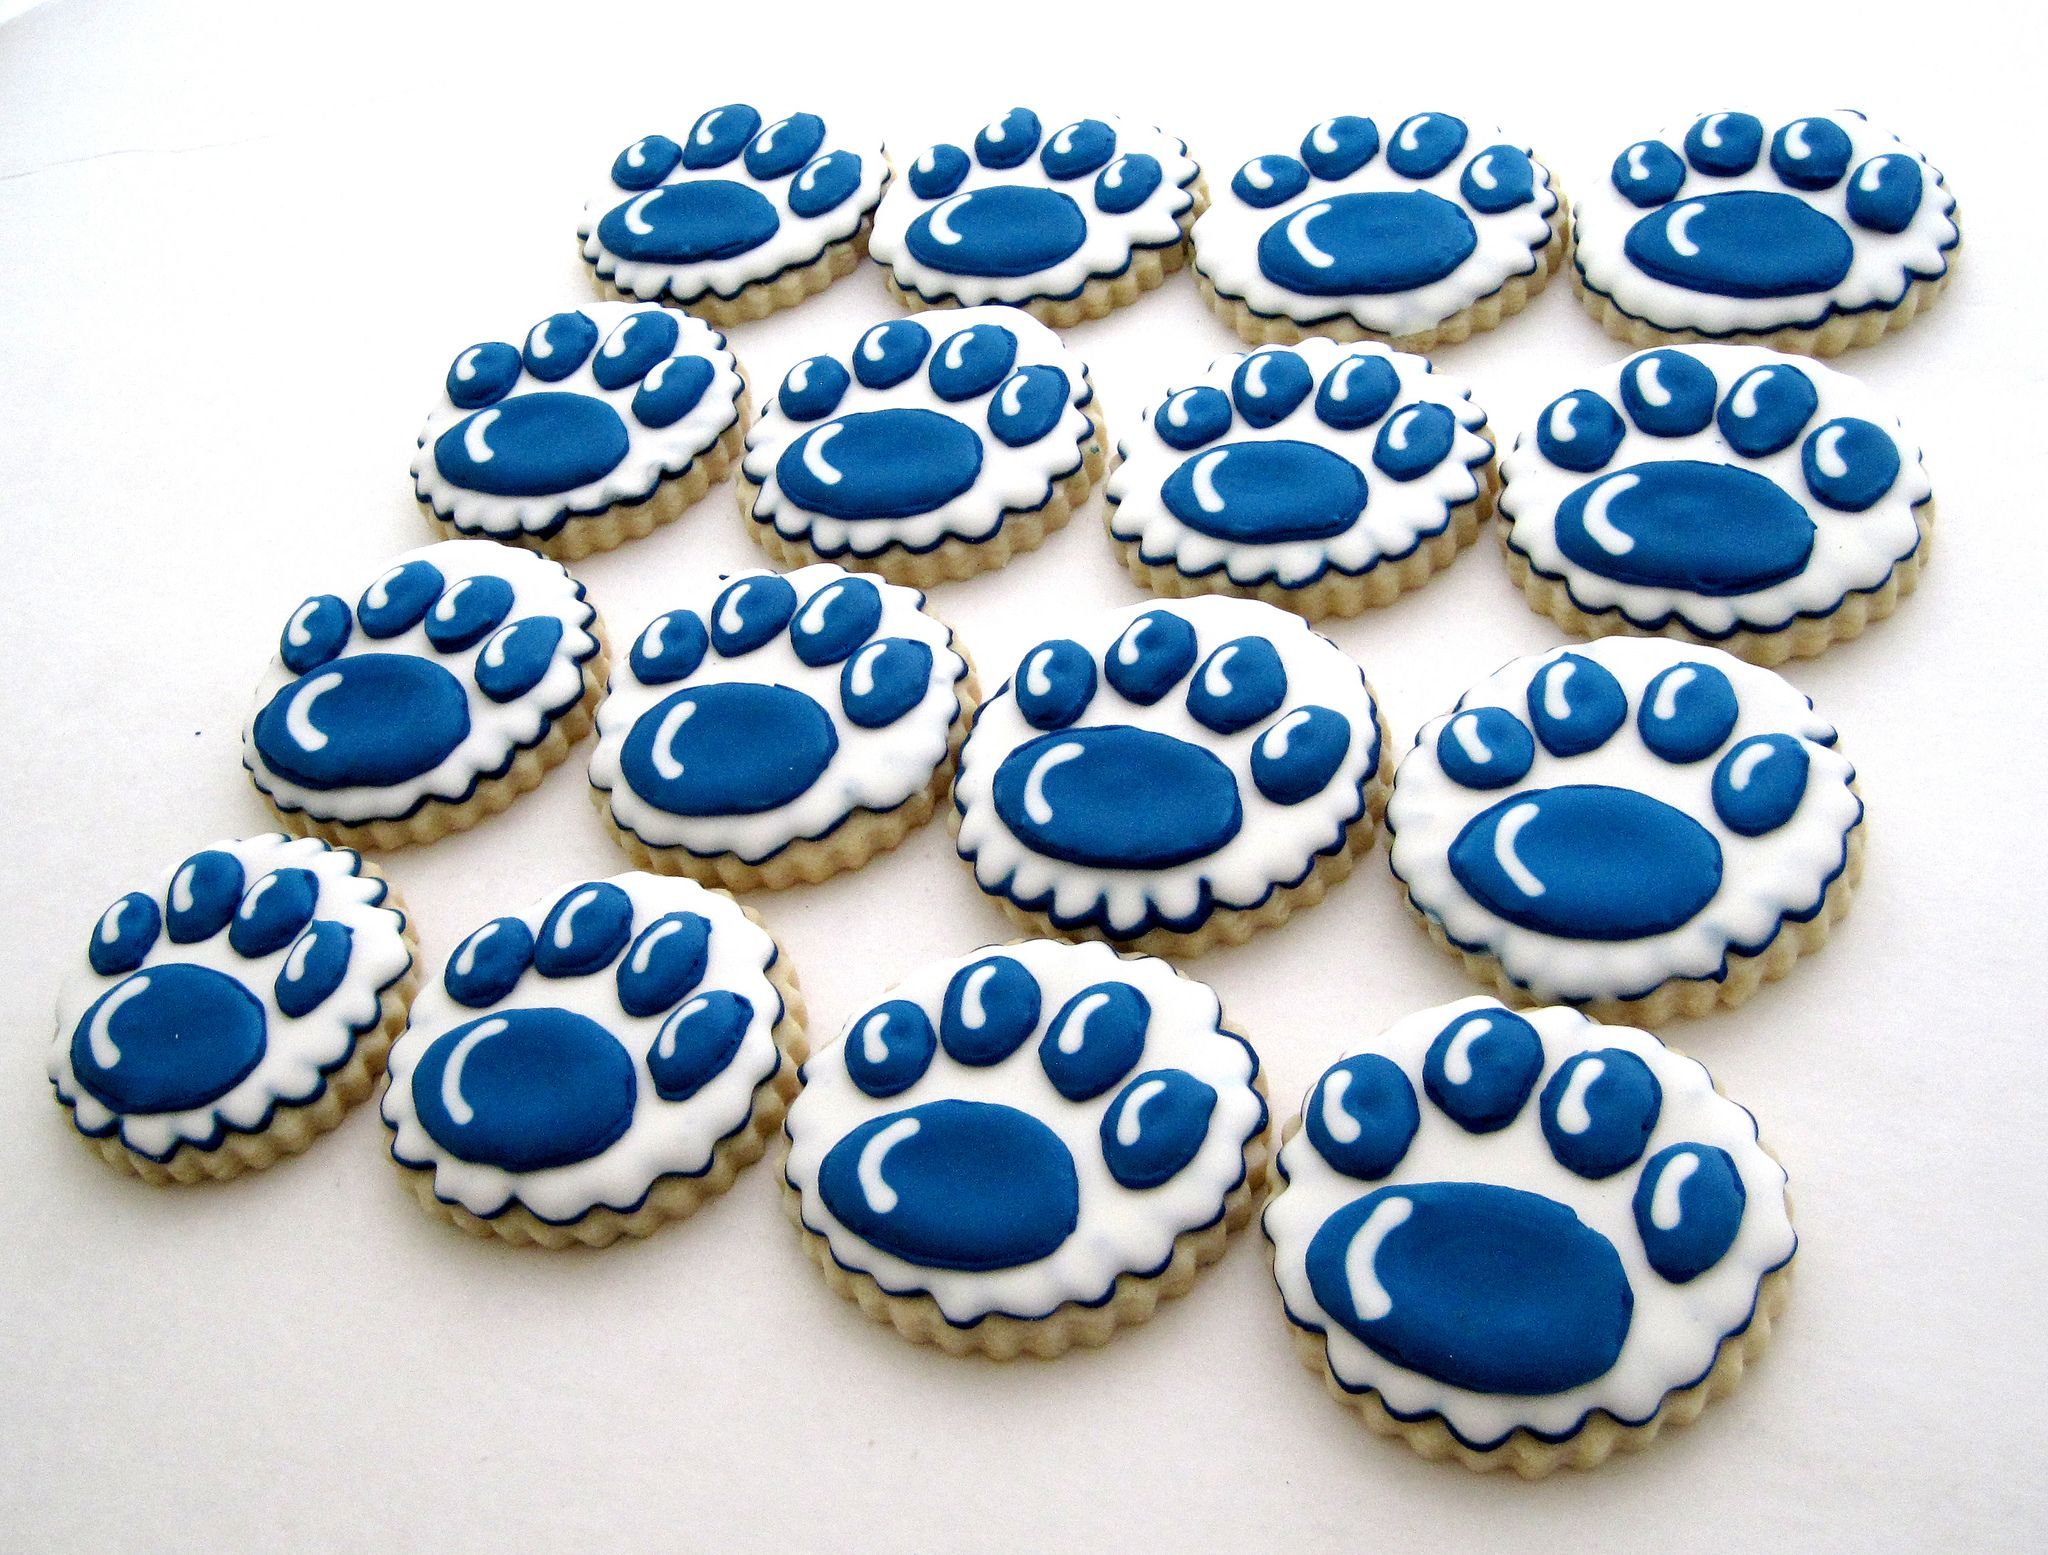 Penn State Nittany lion paw cookies Flickr Photo